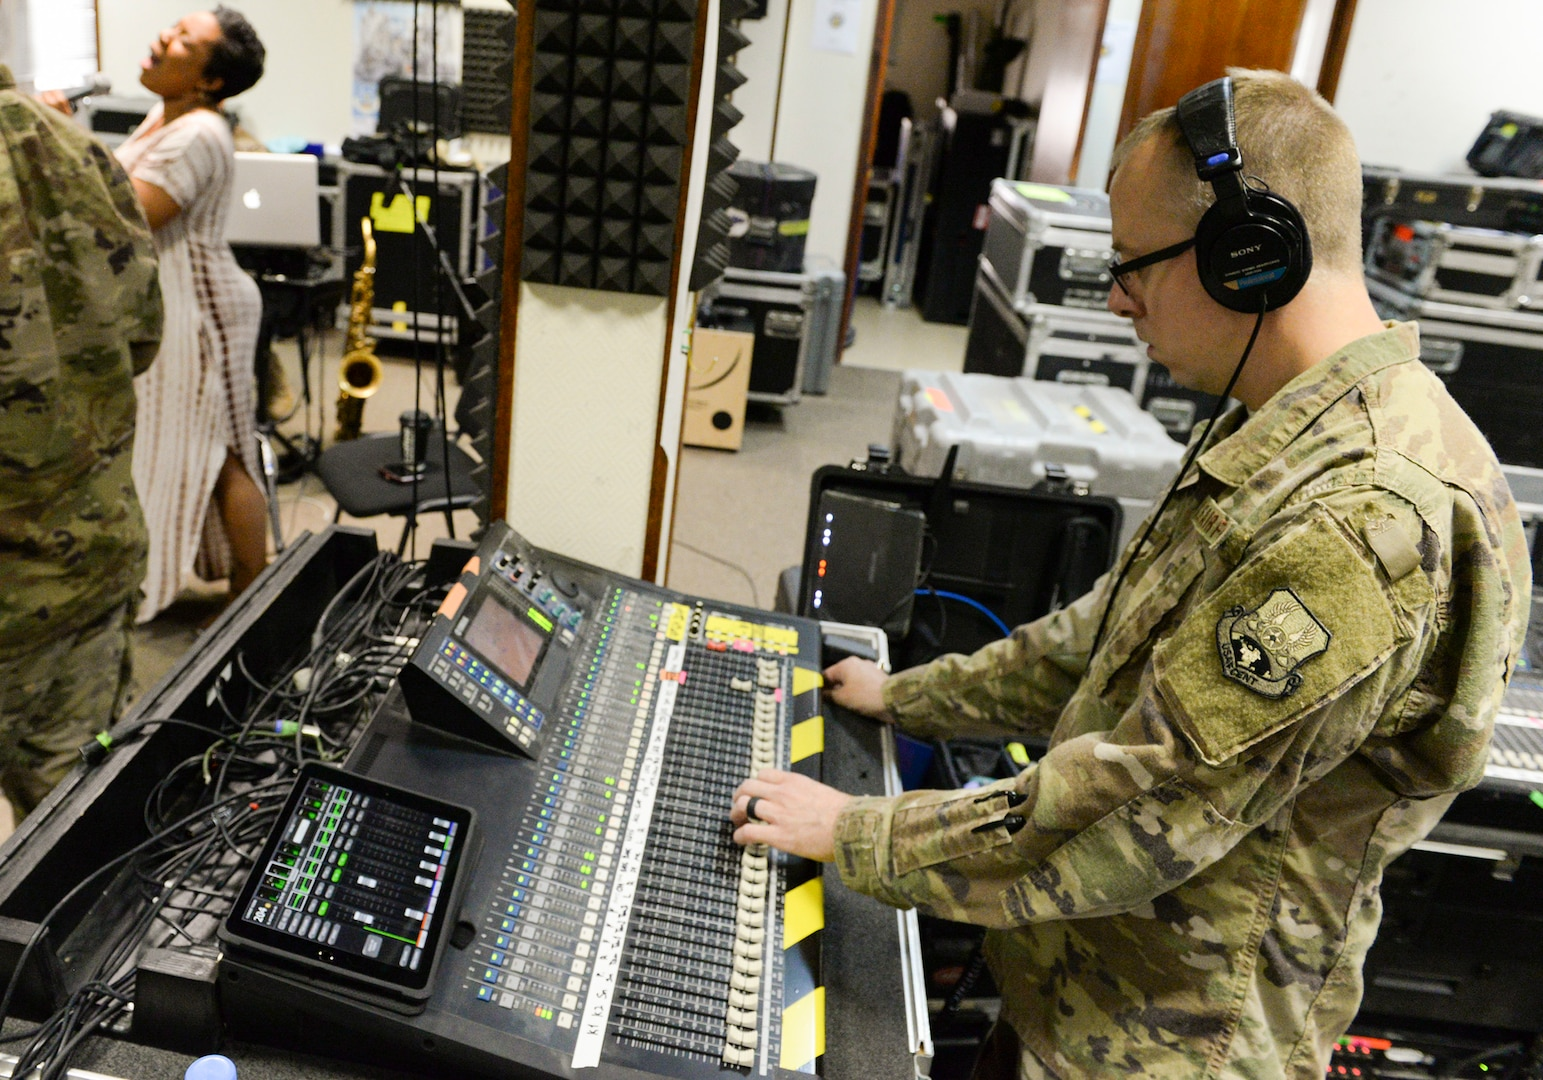 U.S. Air Force Airman 1st Class Daniel McCoy, audio engineer assigned to the Air Force Central Command Band, adjusts the sound board during a band practice held in preparation for a concert with Melinda Doolittle, background left, at Al Udeid, Air Force Base, Qatar, May 25, 2017. The AFCENT Band, stationed at Al Udeid, travels throughout the Central Command Area of Responsibility in support of building partnerships, boosting morale, and providing diplomacy and outreach to host nation communities. (U.S. Air Force photo by Tech. Sgt. Bradly A. Schneider/Released)